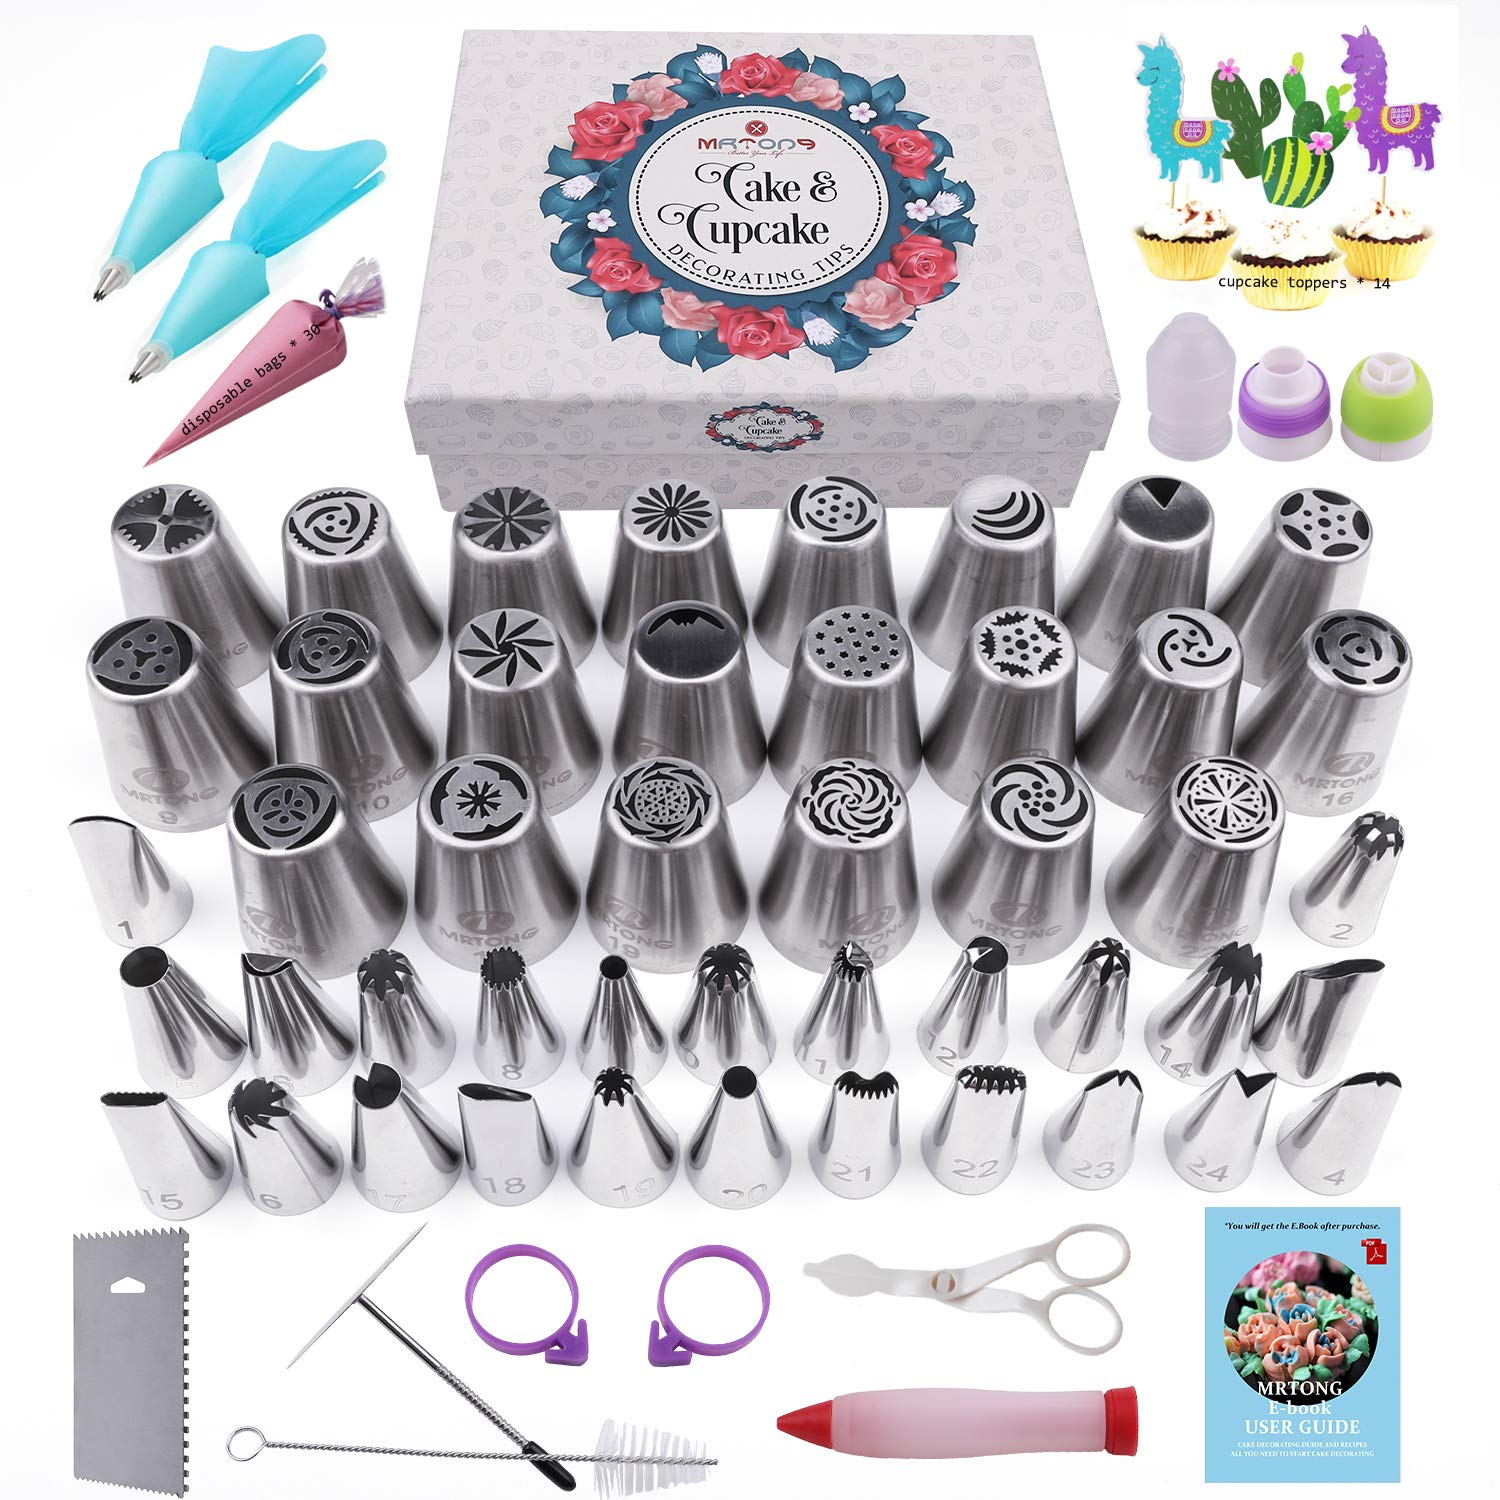 Russian Piping Tips Set -104pcs Cake Decorating Supplies - - 46 Icing Piping Tips (22 Russian+21 Icing+3 Leaf Tips), Cake & Cupcake Decorating Kit with Pattern Chart & Ebook User Guide by MRTONG